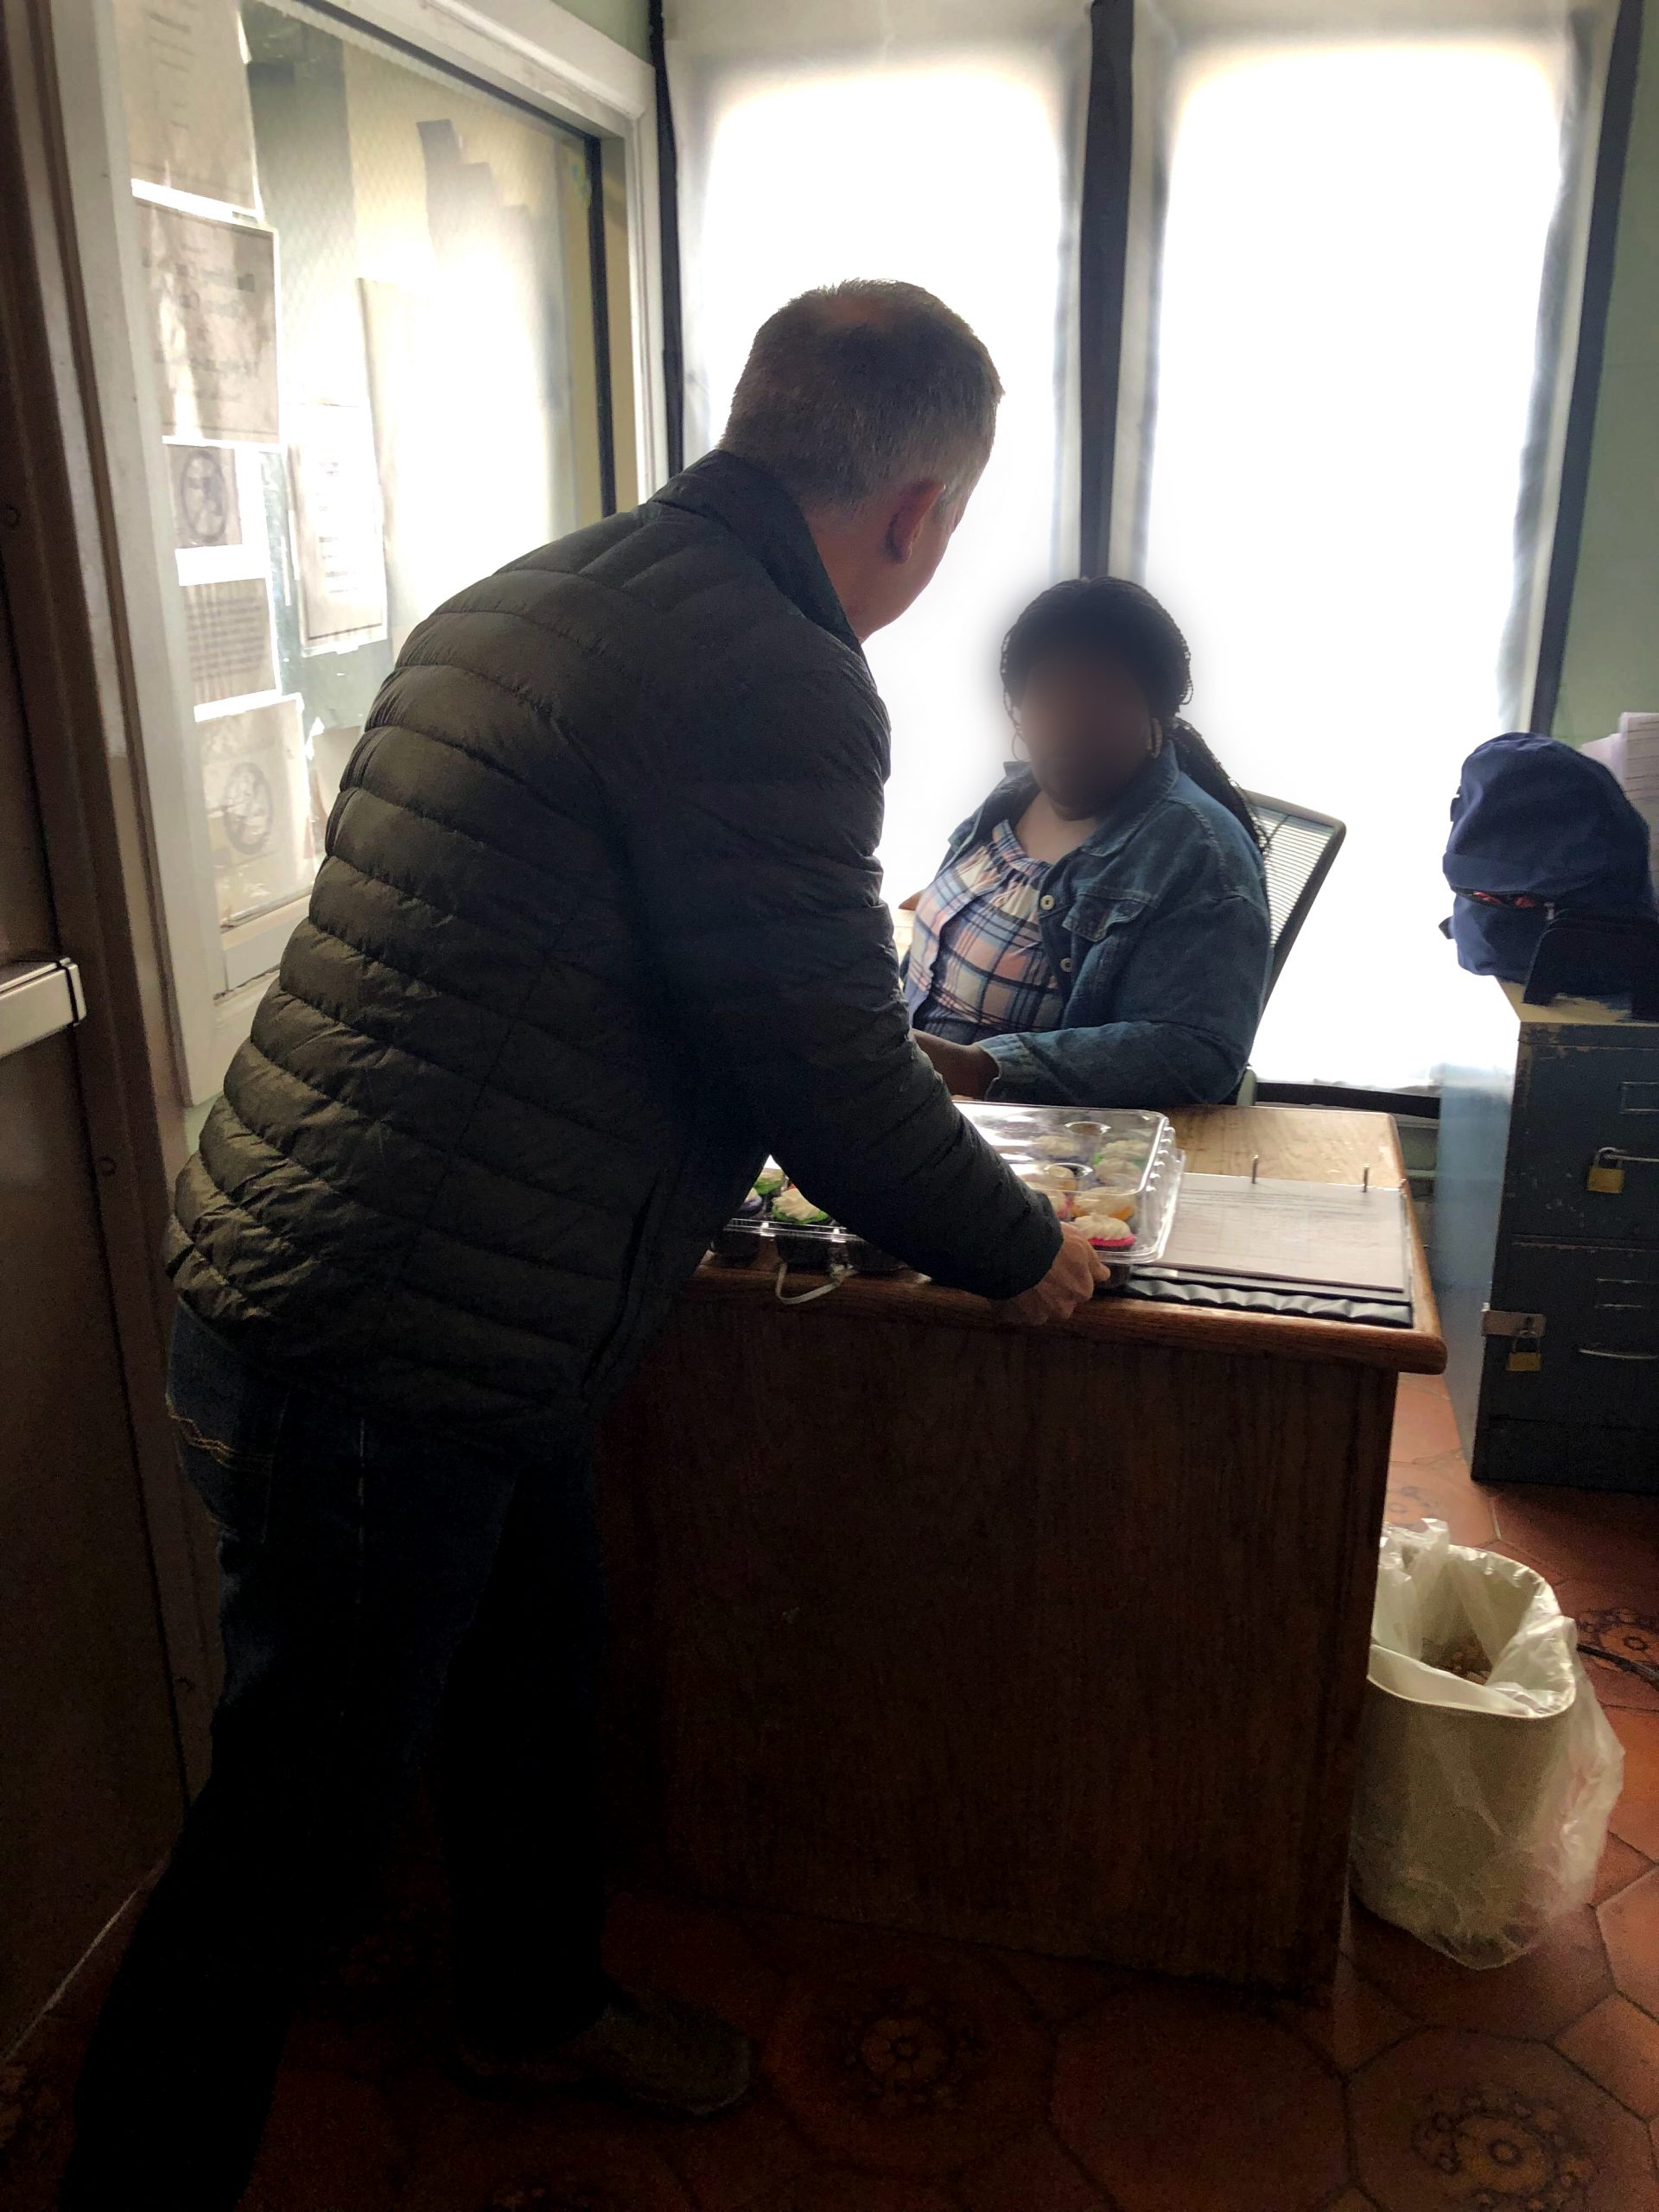 Ahead of the runoff election, 46th Ward alderman James Cappelman delivered cupcakes to all four nursing homes that have polling places.